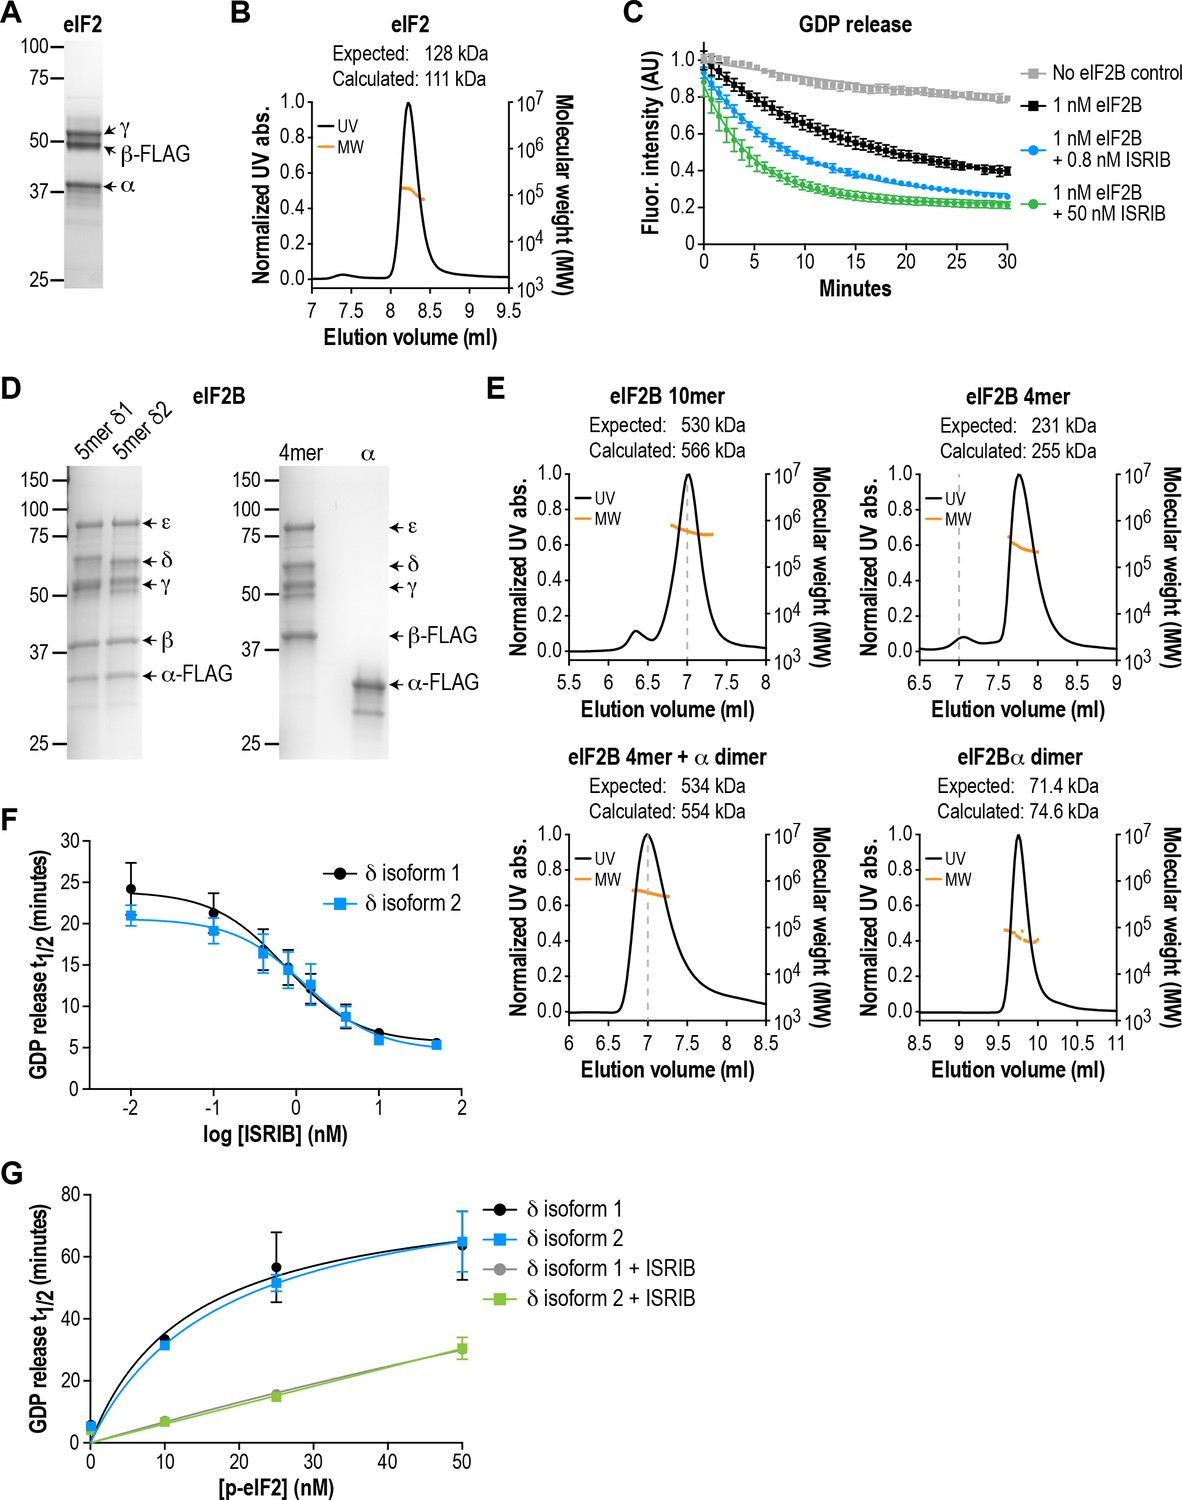 The Small Molecule Isrib Rescues Stability And Activity Of Free Information Society Geiger Counter Electronic Circuit Schematic Eif2b Isoforms Have Identical Gef Alters Sensitivity To Eif2 Phosphorylation